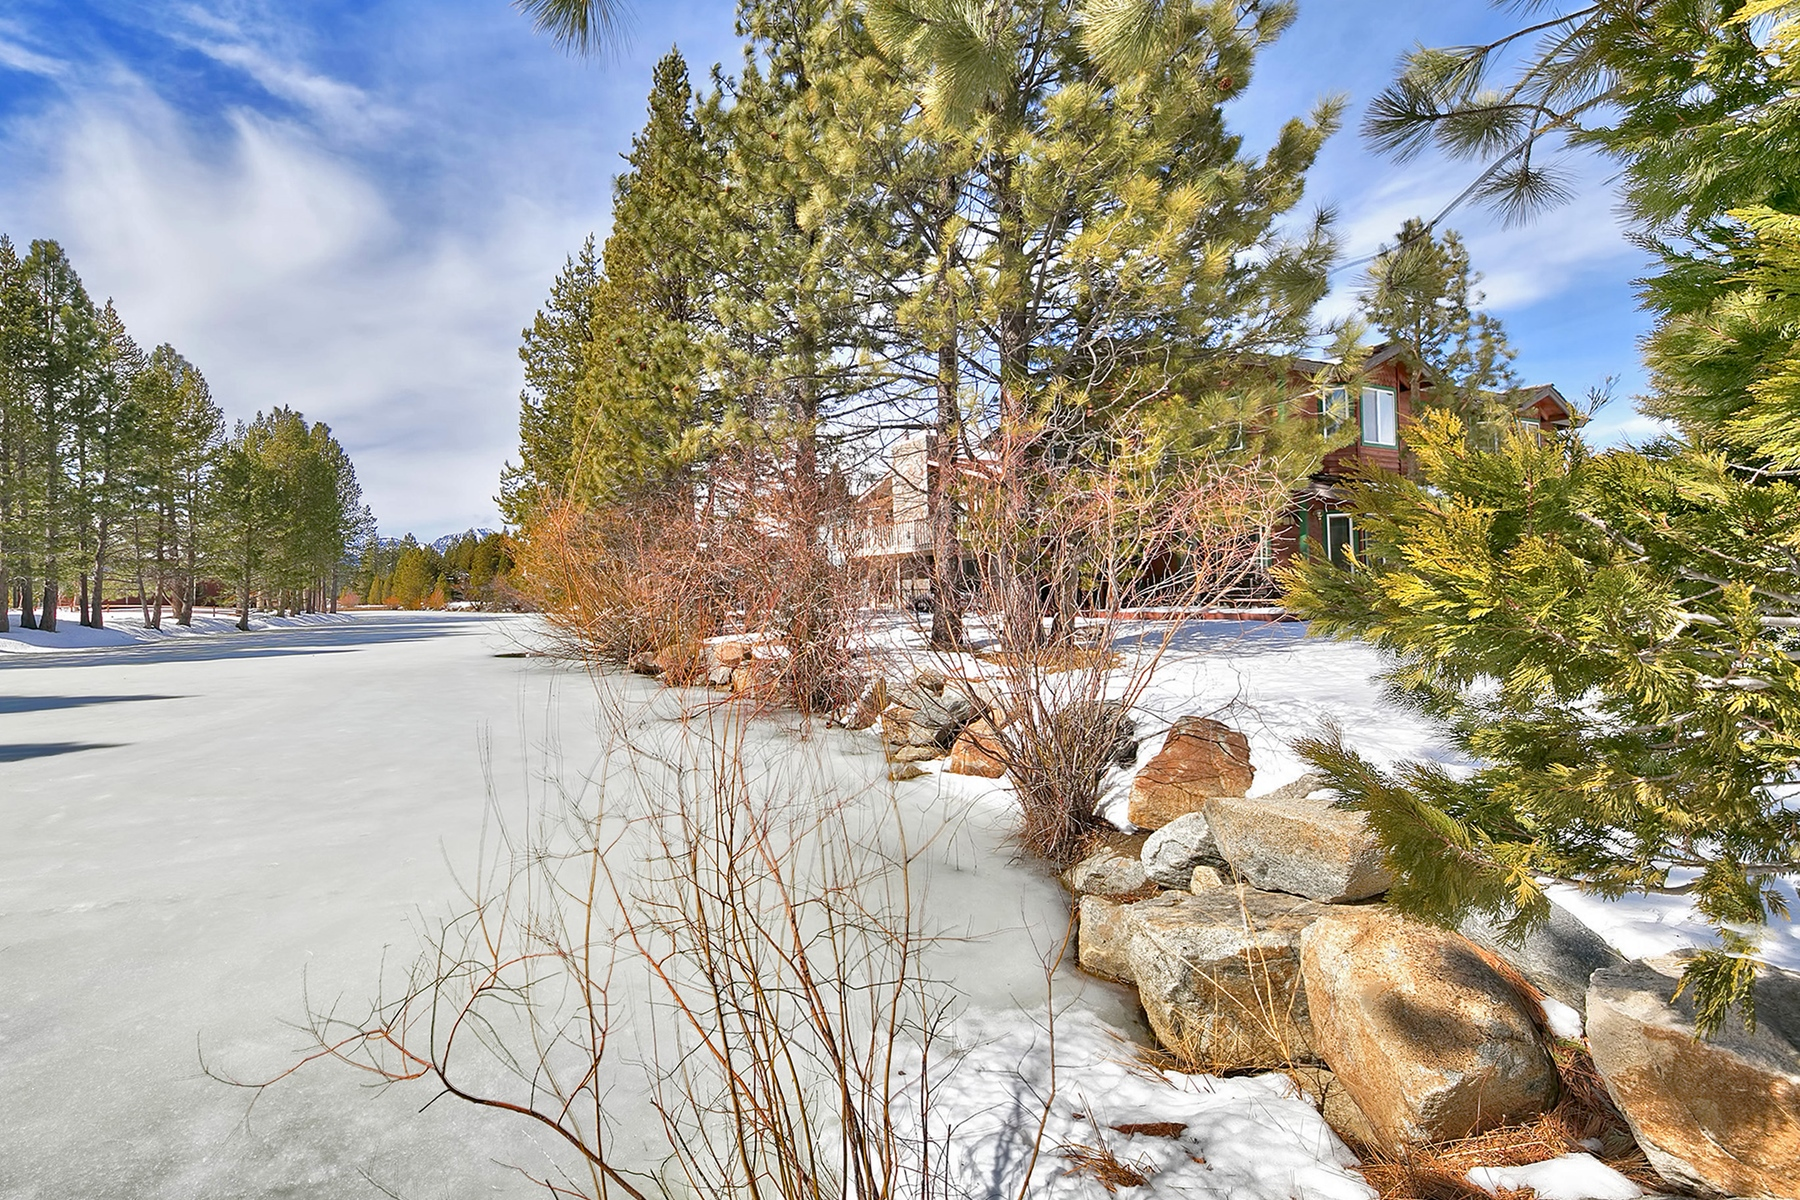 Additional photo for property listing at 2177 15th Street, South Lake Tahoe CA 96150 2177 15th Street South Lake Tahoe, California 96150 United States